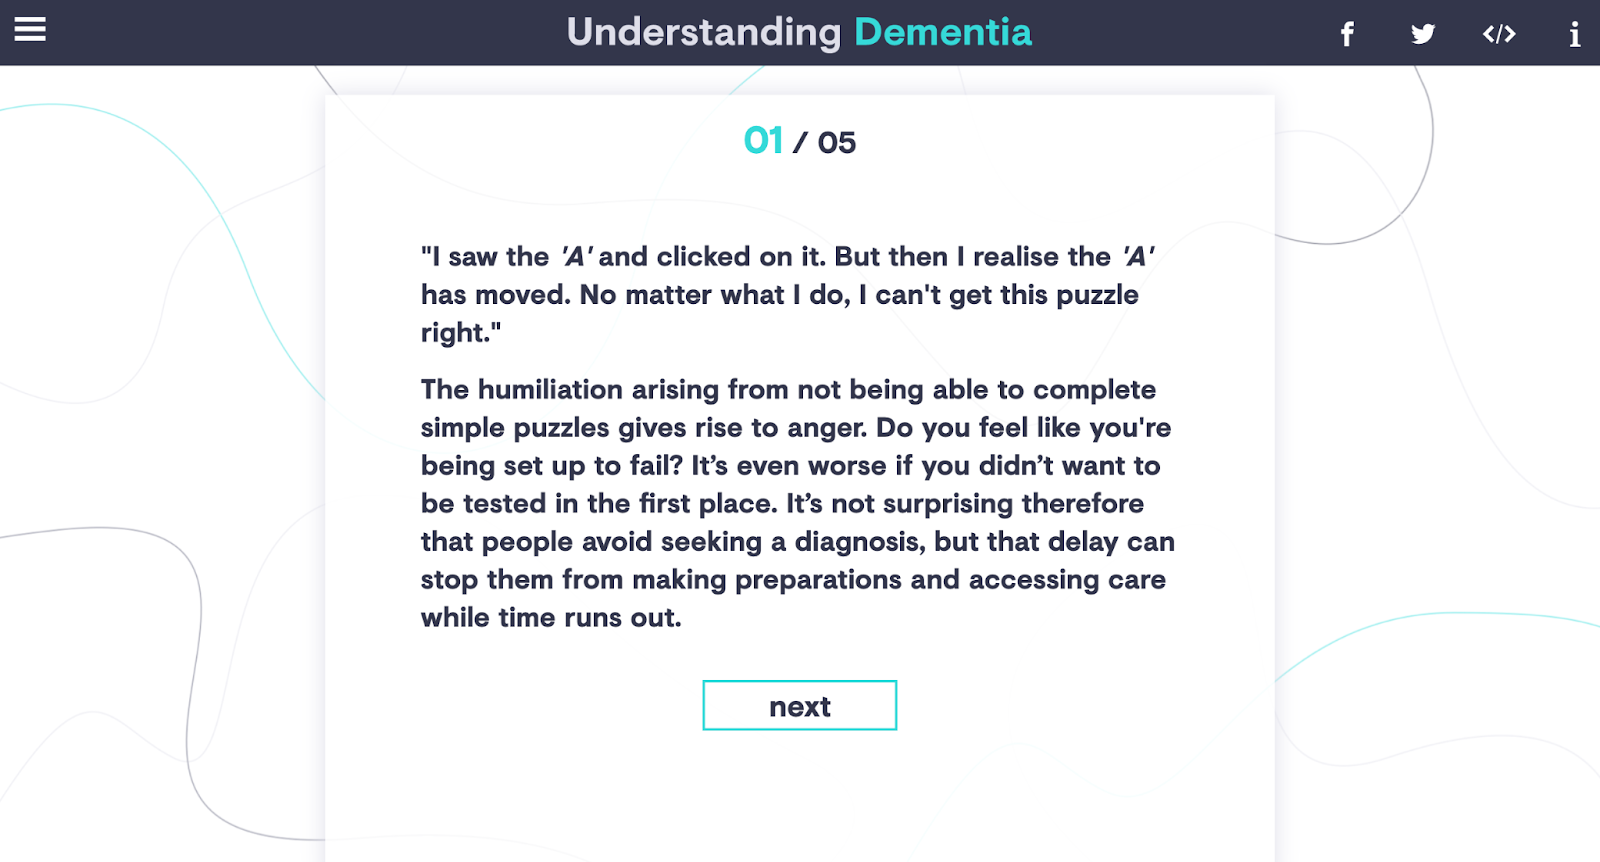 A screenshot of our puzzle game 'Understanding Dementia' for Babylon Health. The screen shows how we incorporated the expert's comments into the campaign results page.